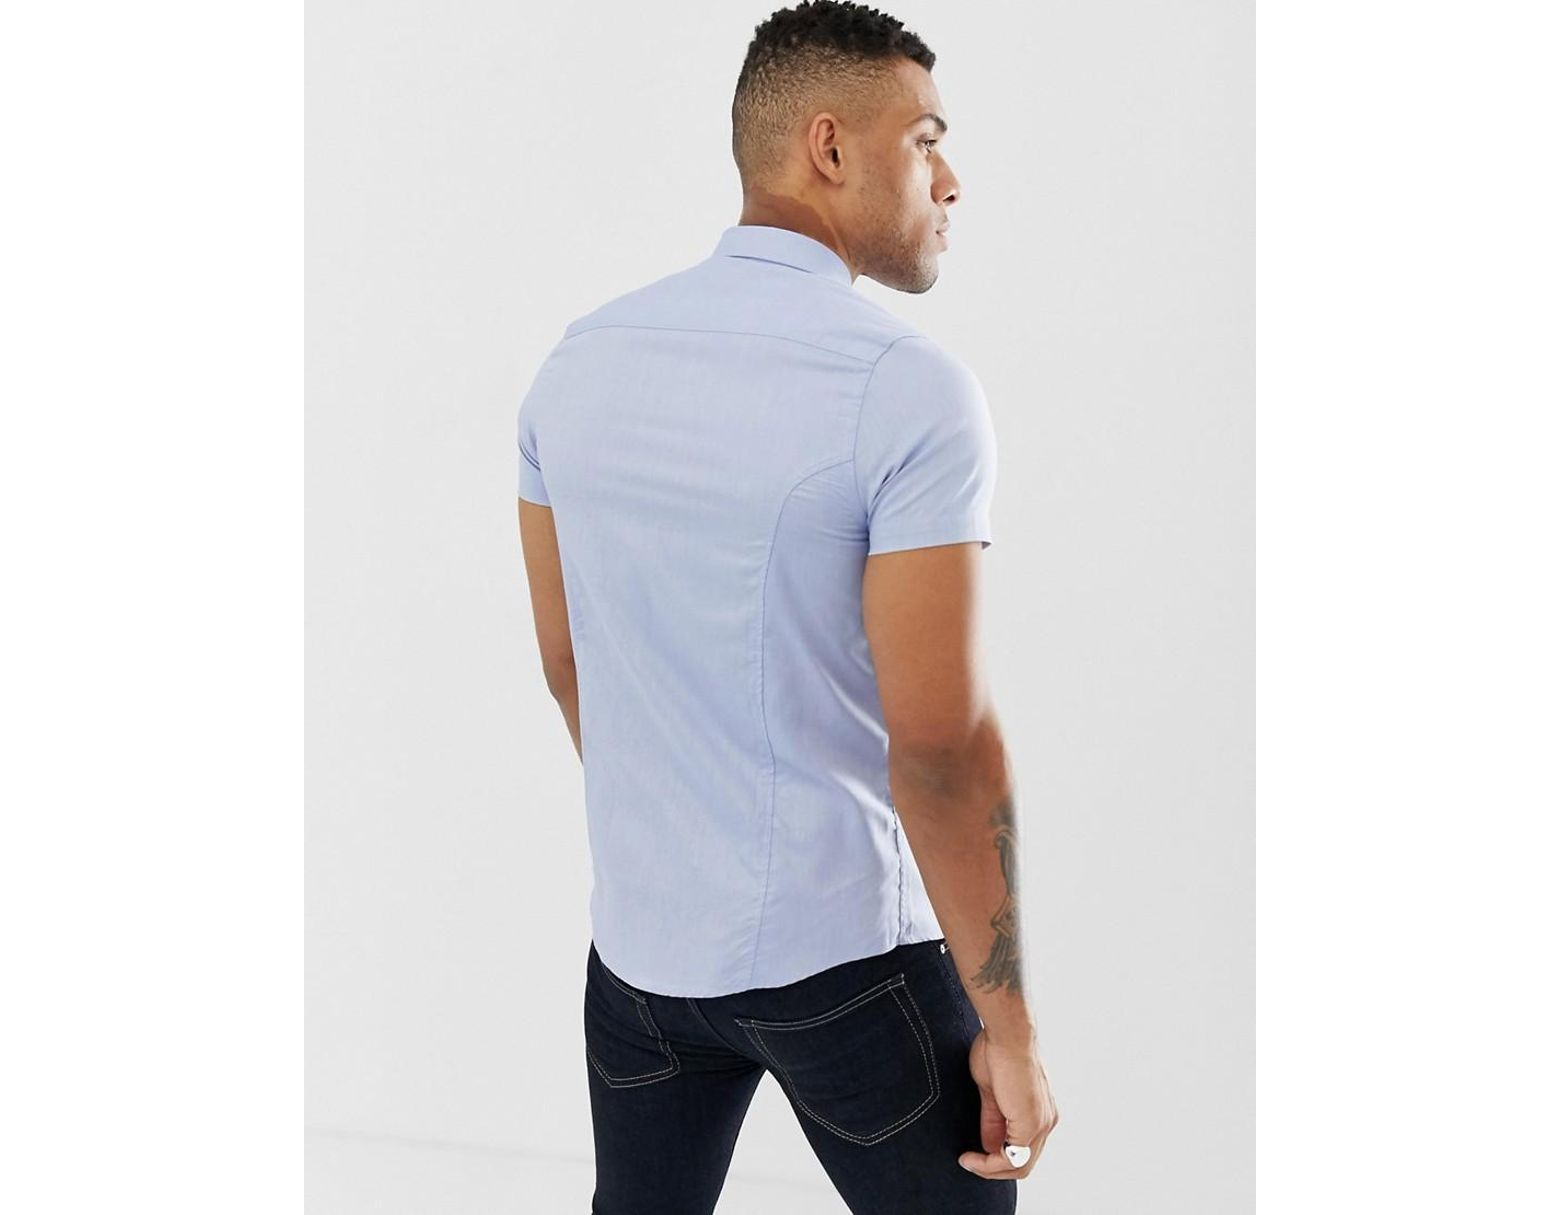 05246275d3b0c Gym King Muscle Short Sleeve Shirt In Blue Exclusive To Asos in Blue for  Men - Lyst